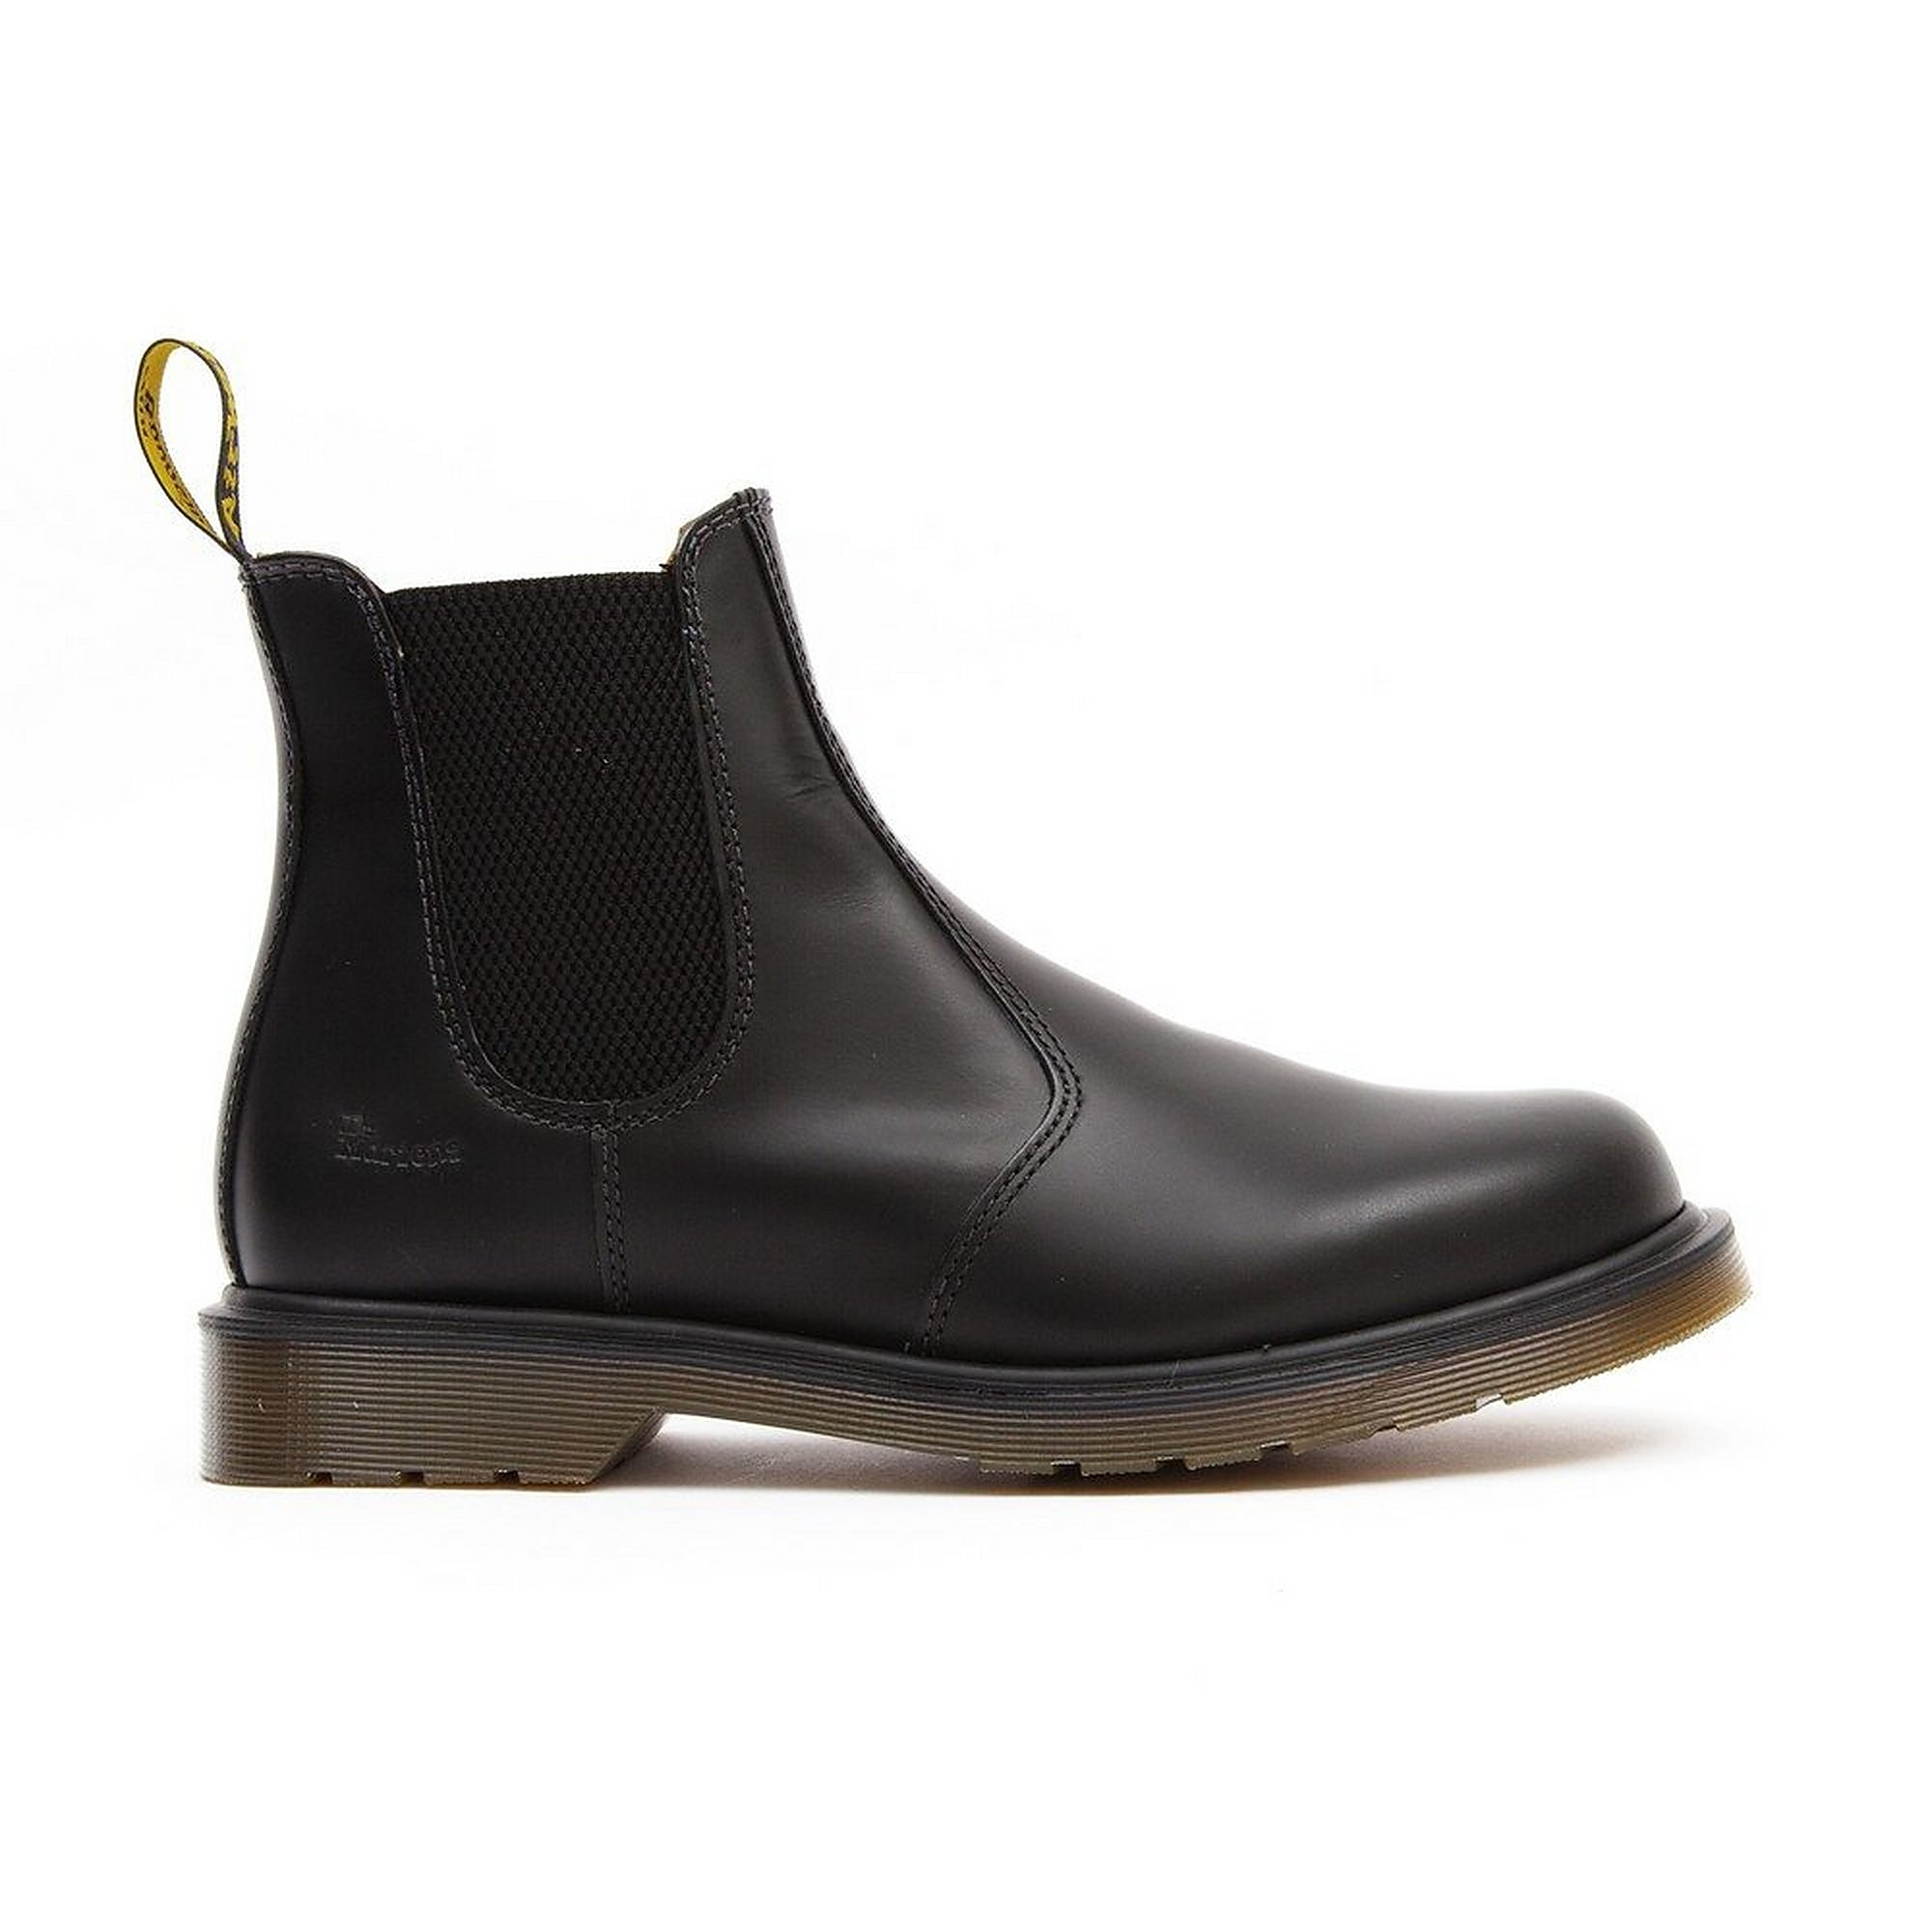 Dr Martens Mens 2976 Leather Boots - Smooth Black